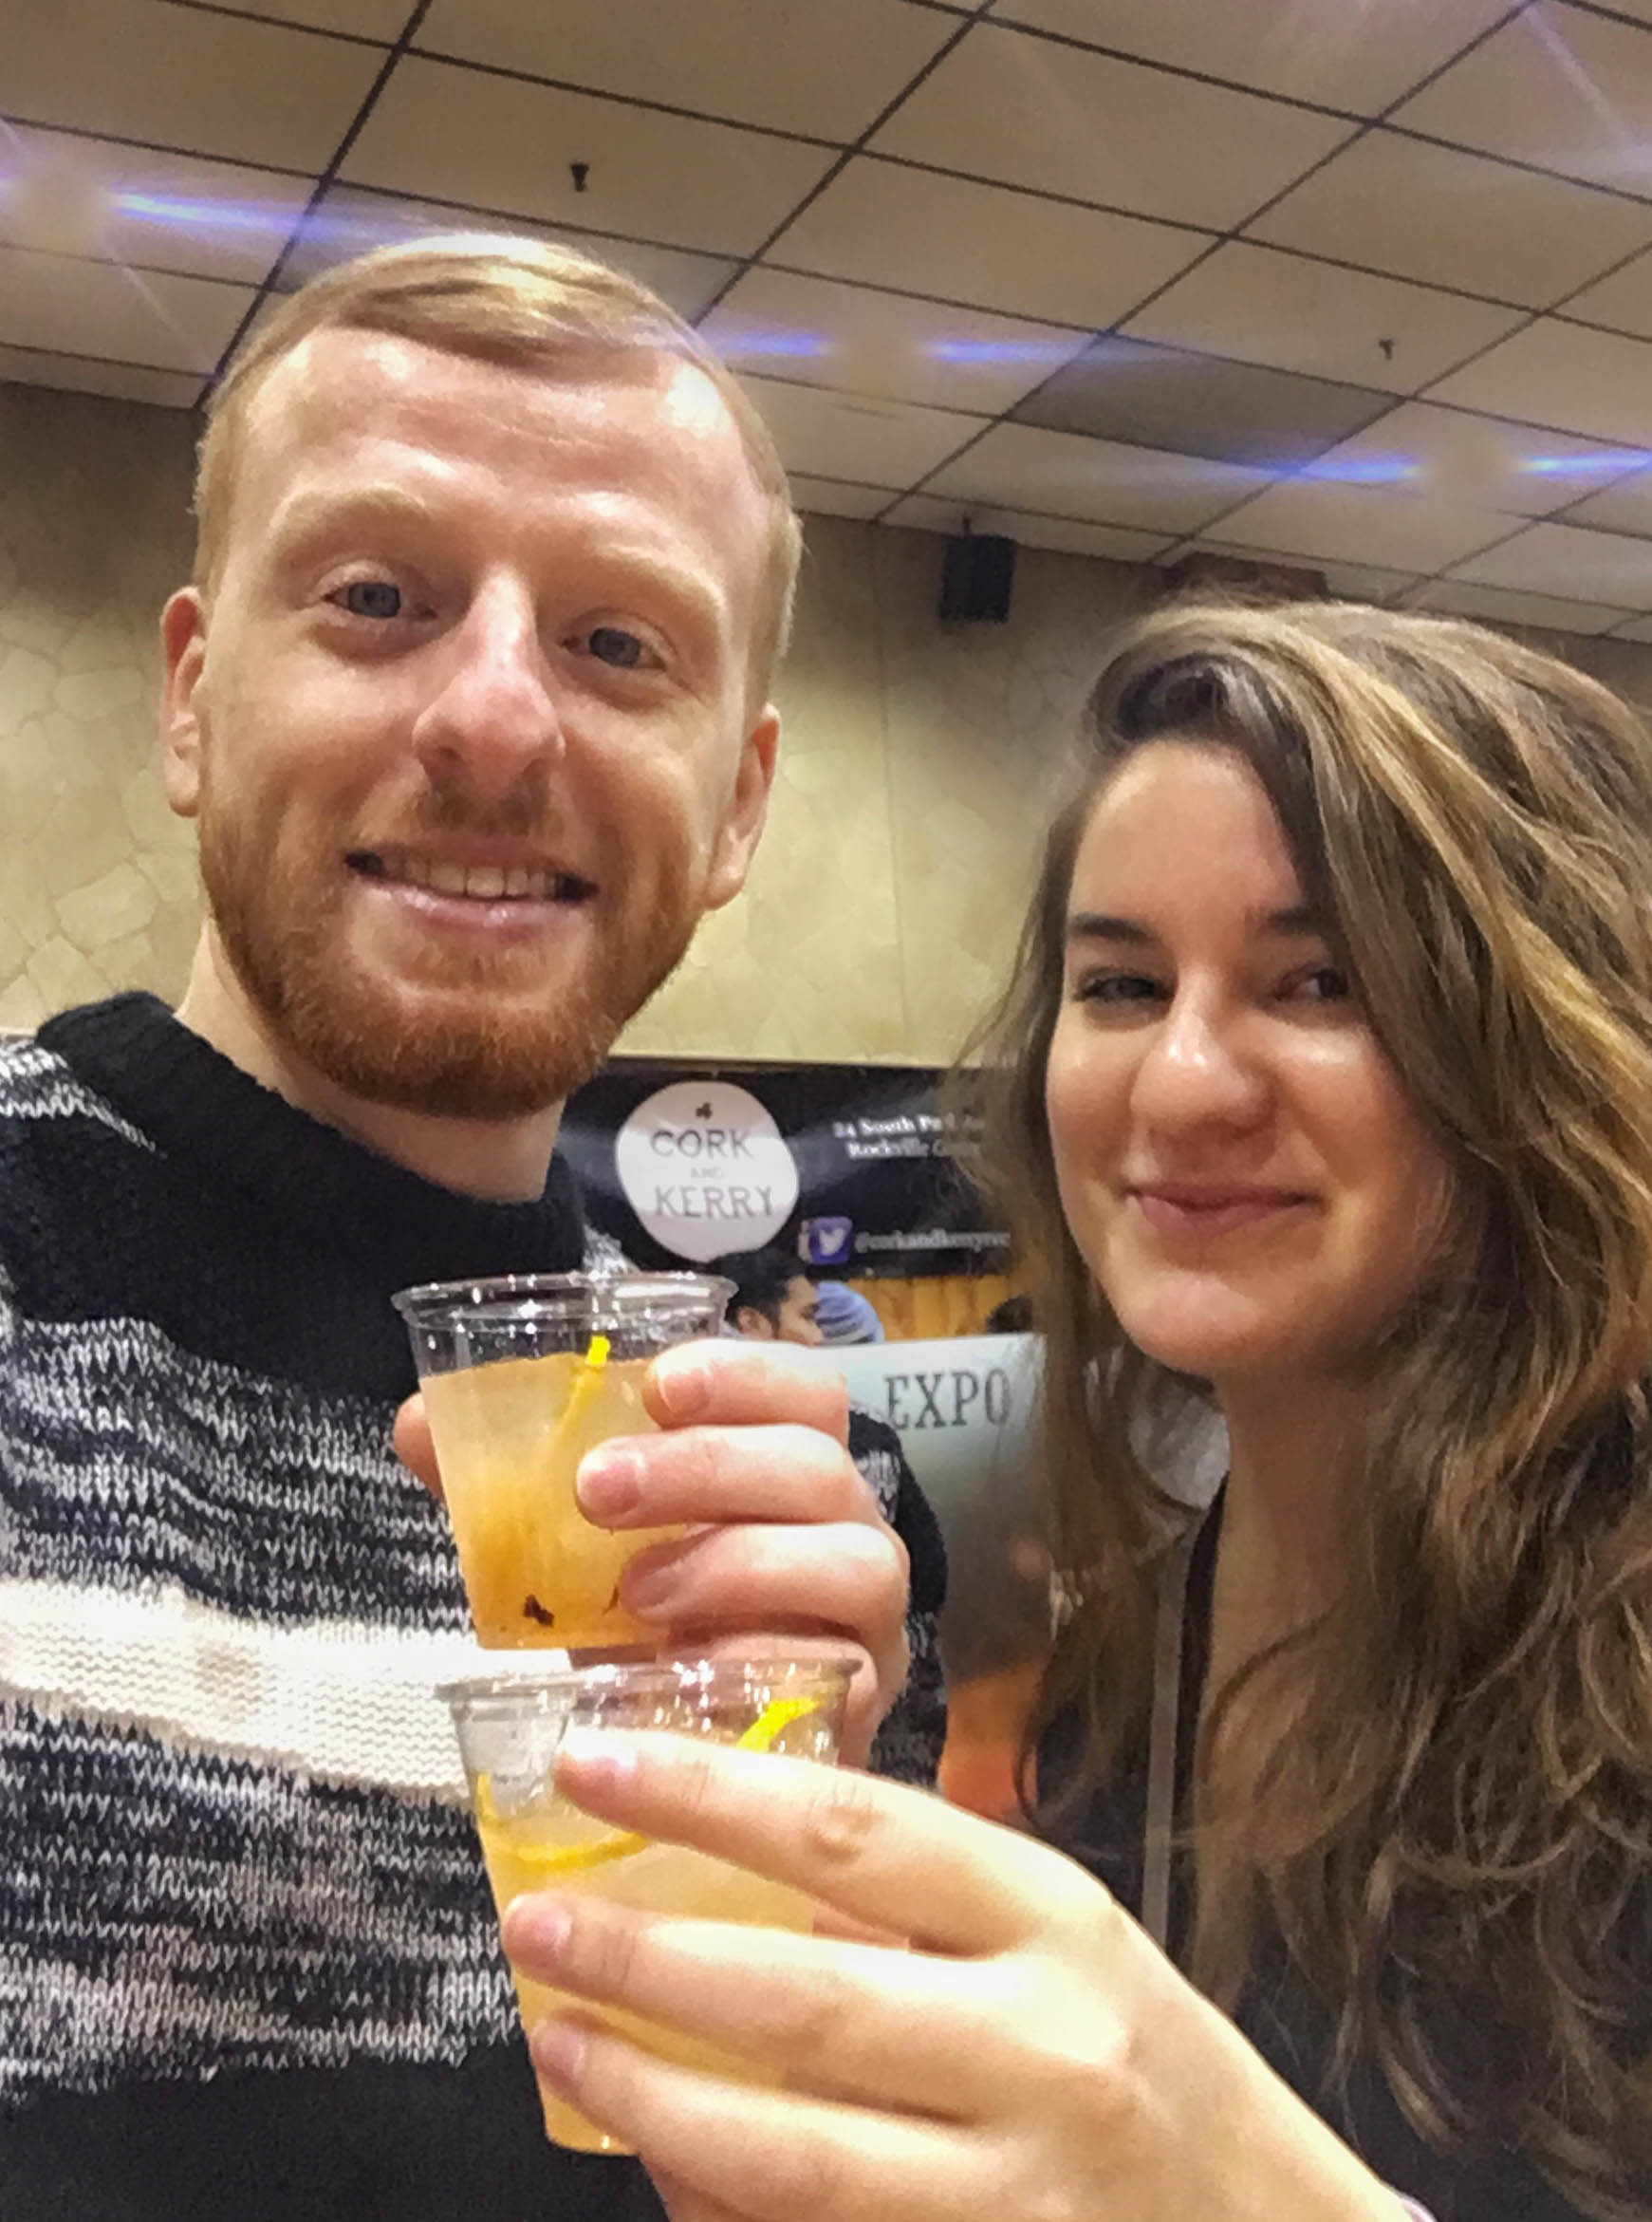 Ross and Daria enjoy cocktails at the festival.